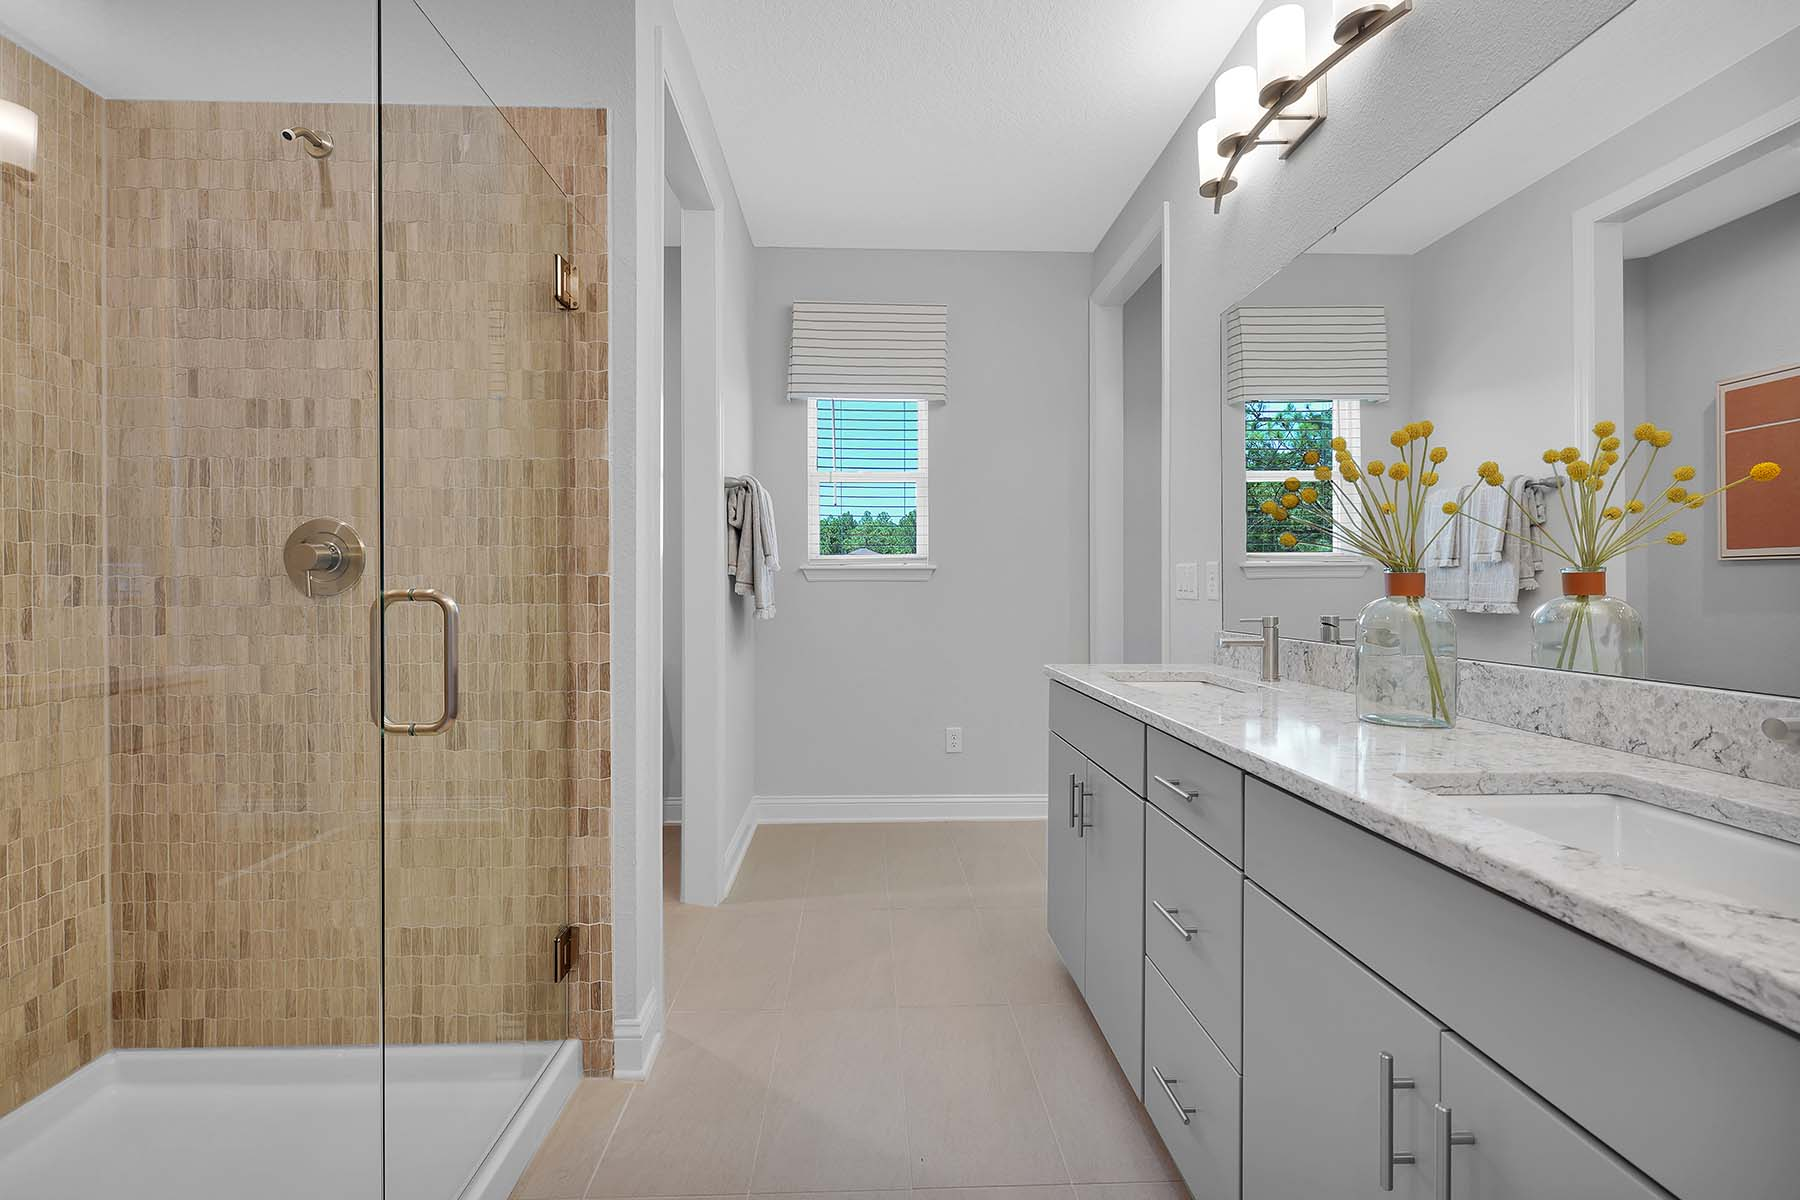 Waverly Plan Bathroom_Master Bath at Pablo Cove in Jacksonville Florida by Mattamy Homes